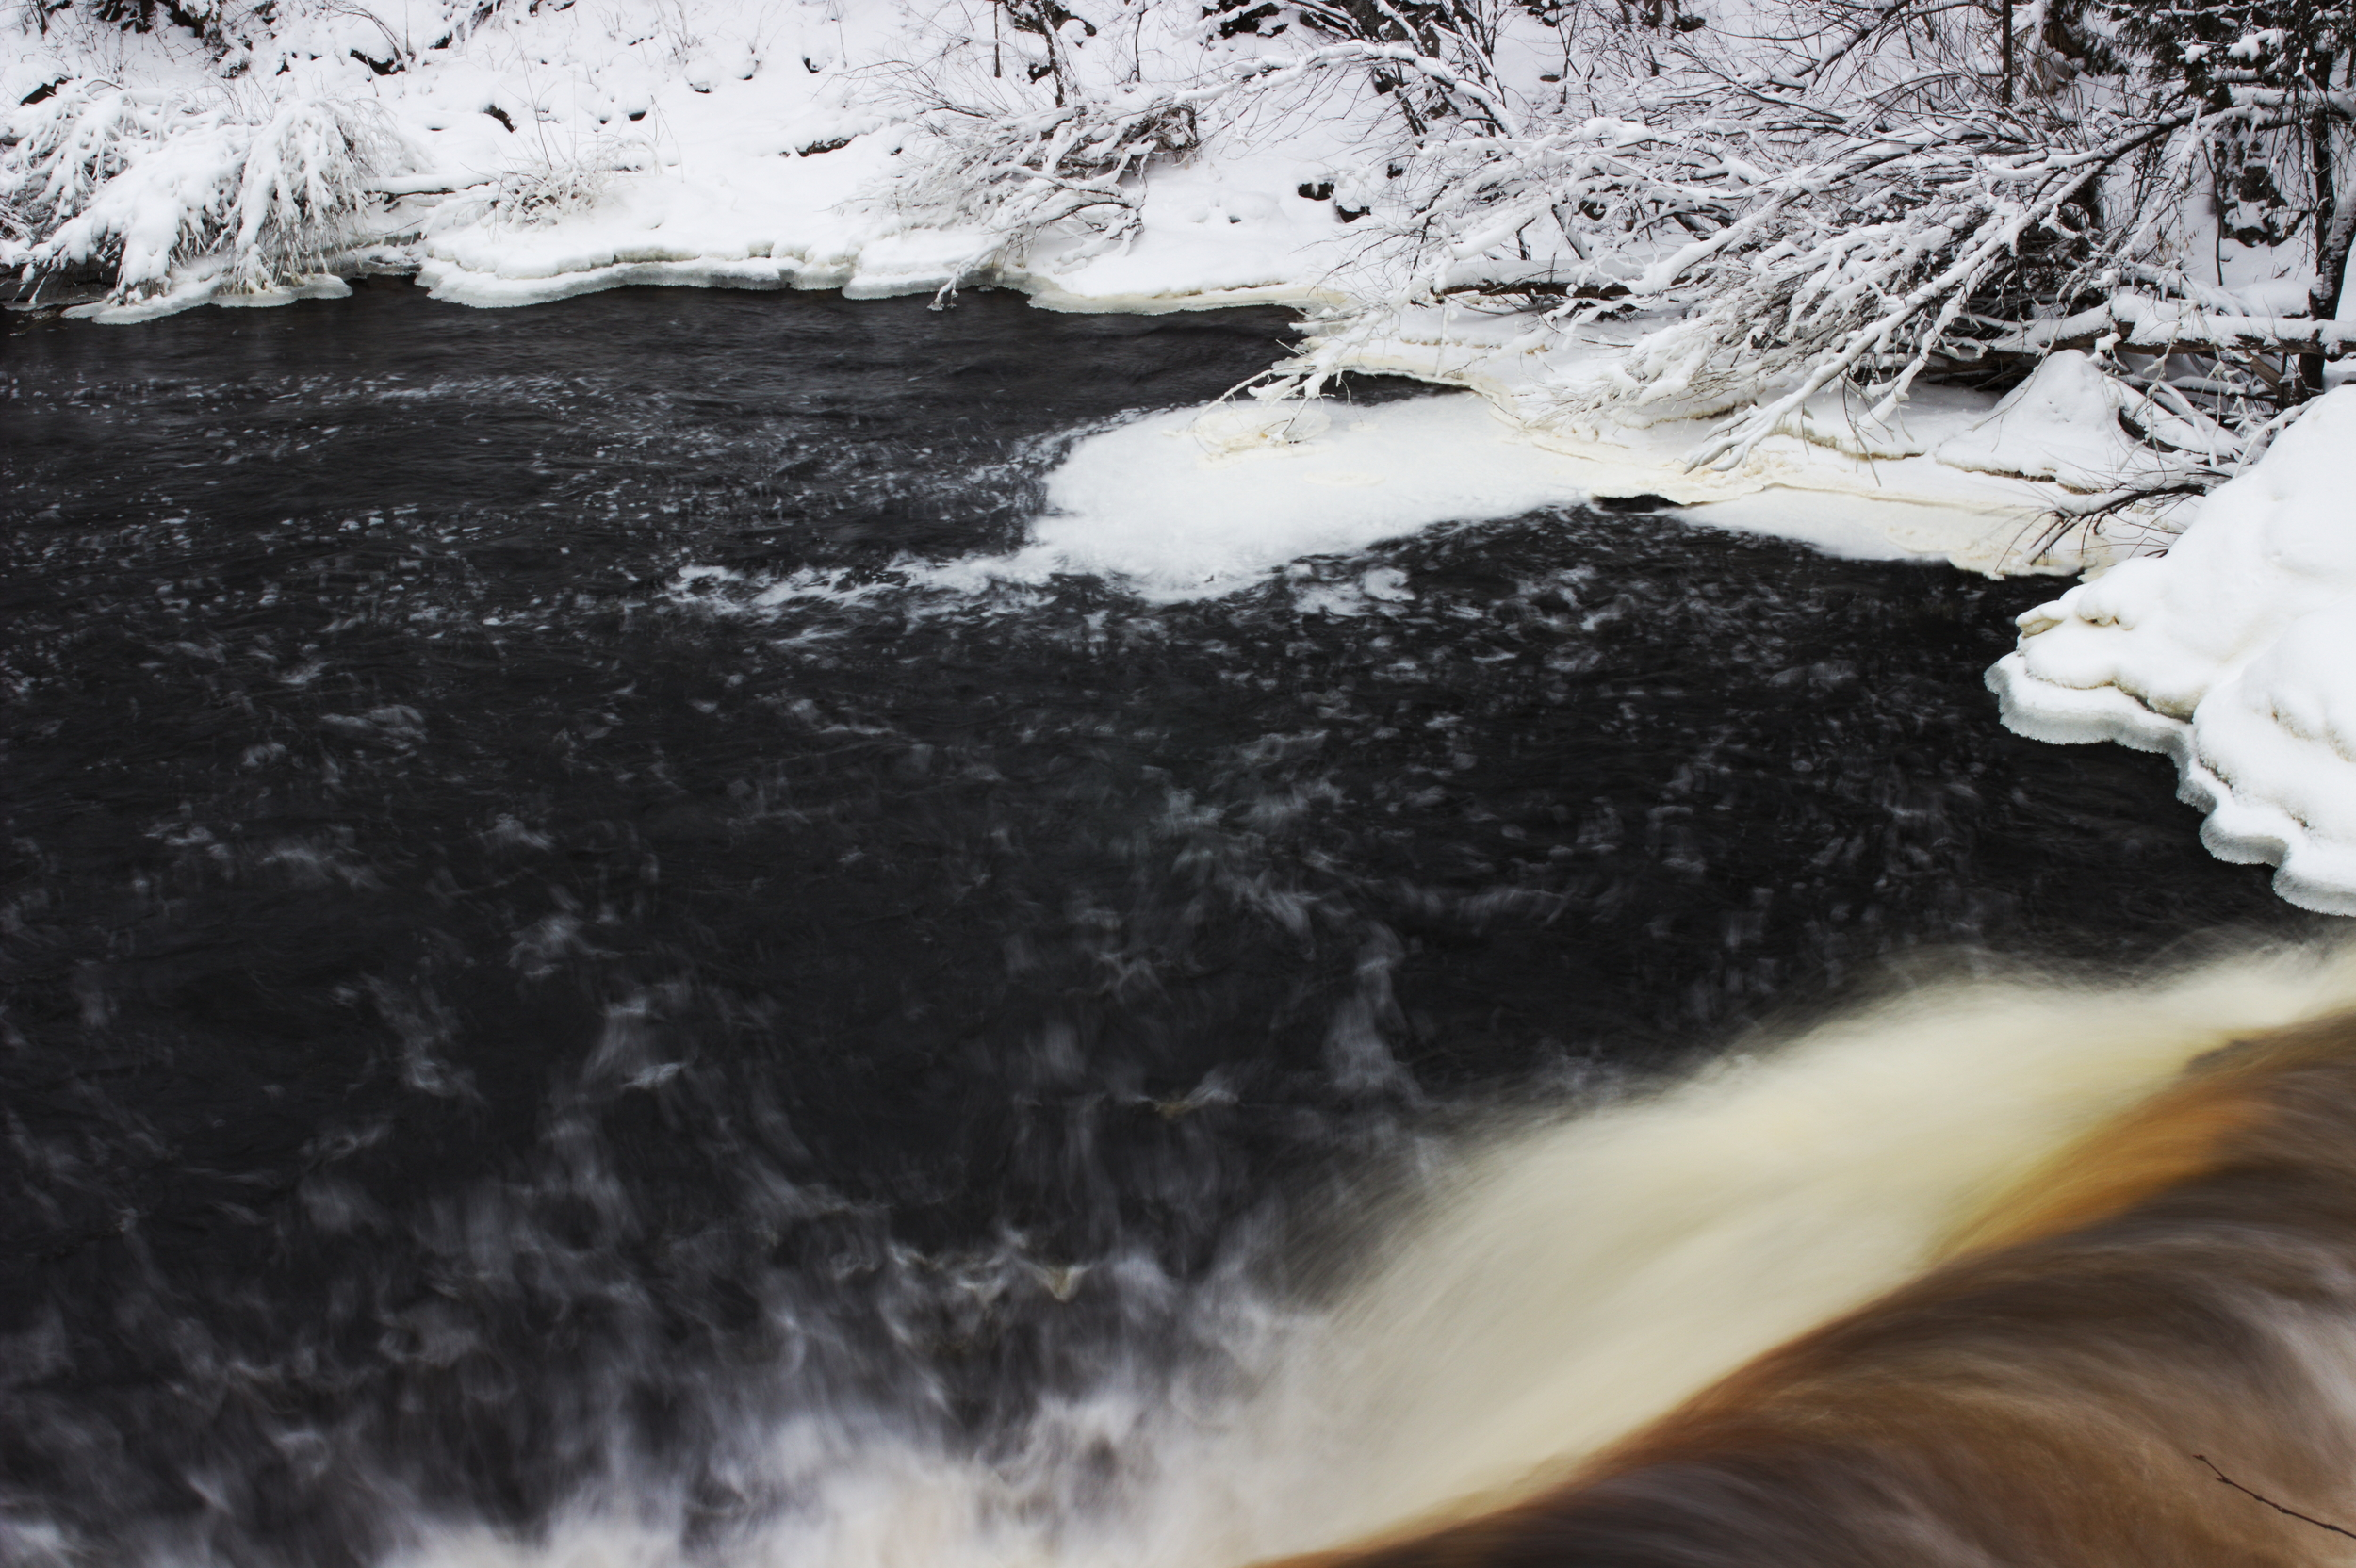 Peterson Falls on the Montreal River